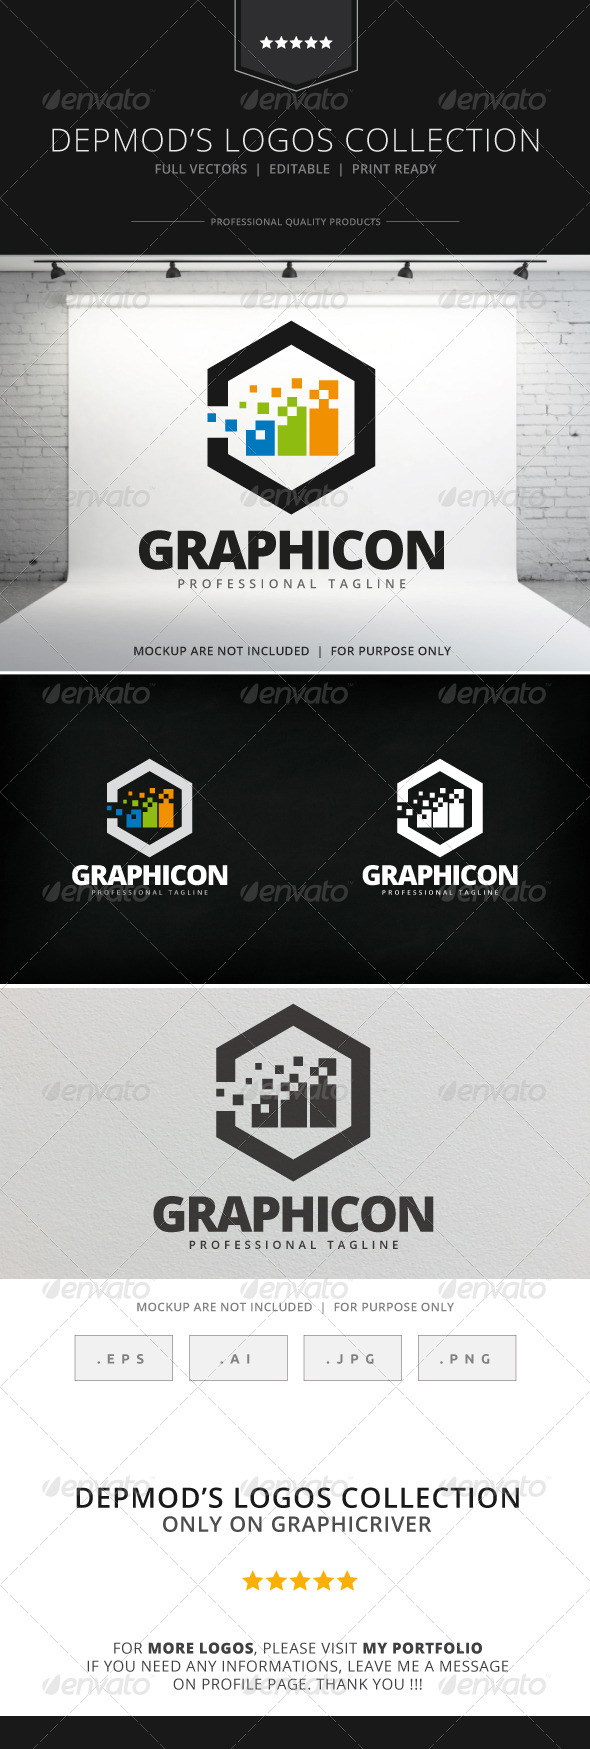 GraphicRiver Graphicon Logo 7972826